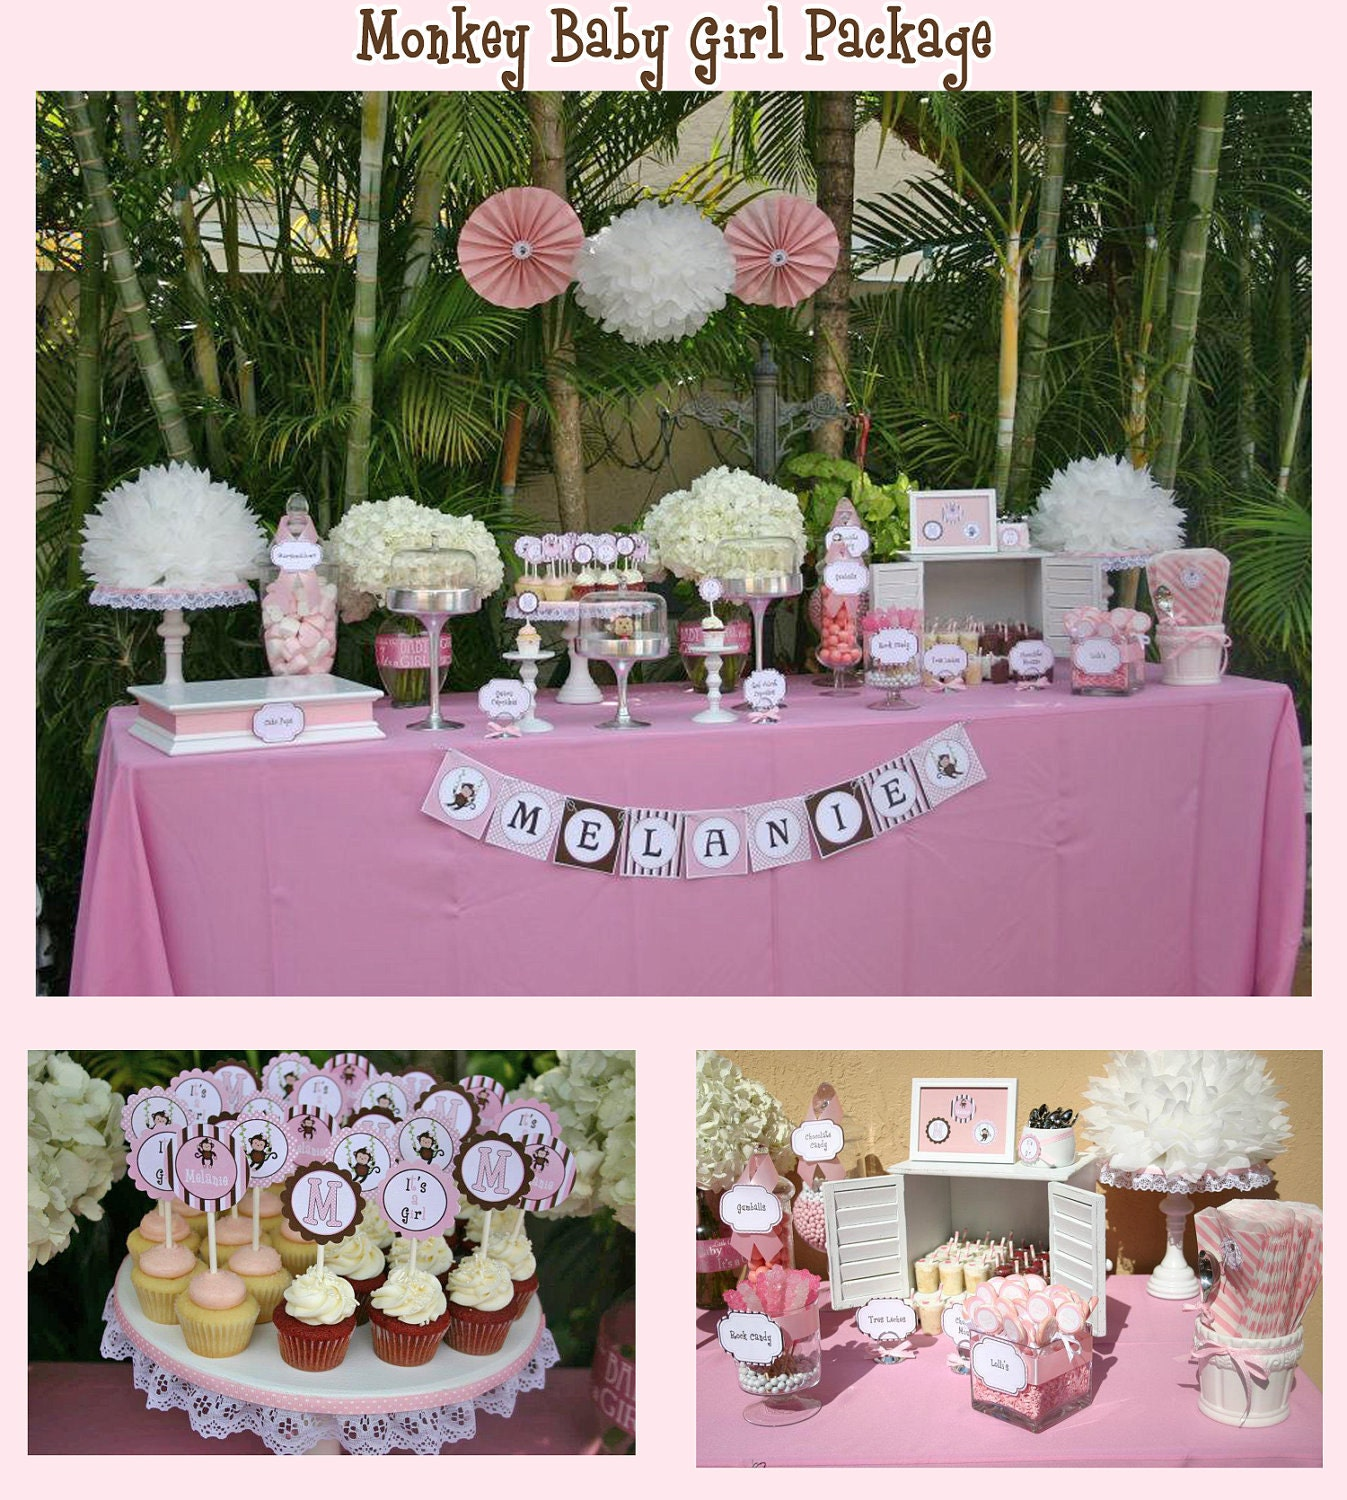 Diy Monkey Baby Girl Deluxe Collection Printable Party Package